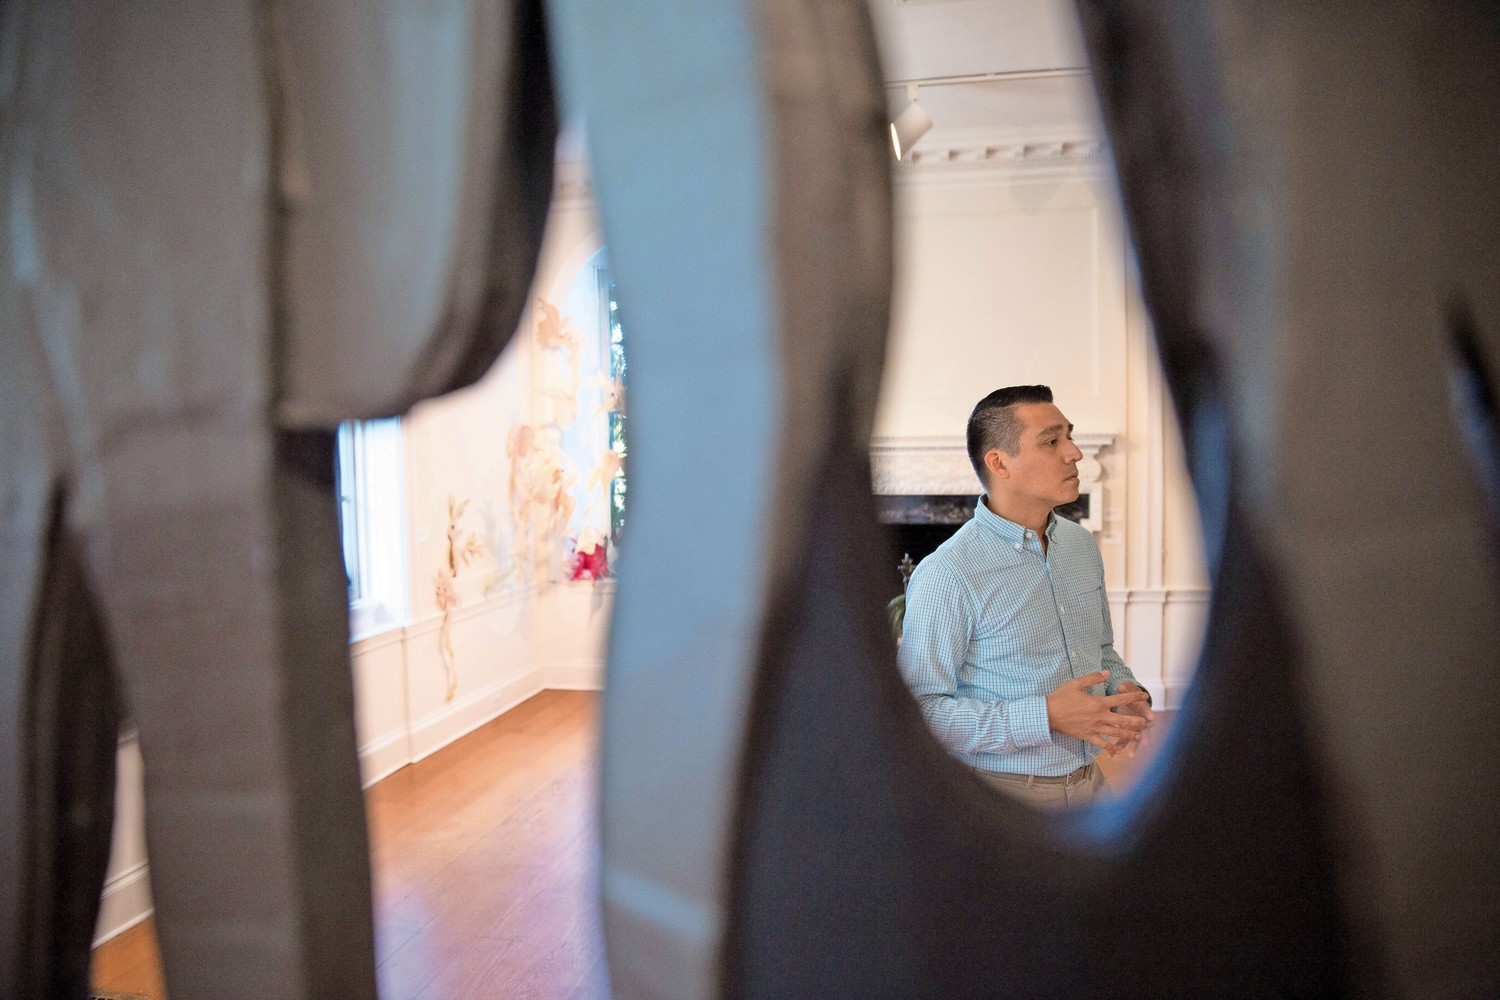 Standing behind an installation by artist Amie Cunat, Gabriel de Guzman — Wave Hill's Glyndor Gallery curator — talks about garden-related works created by New York artists for the Sunroom Project Space's 10th anniversary 'Call & Response' exhibition.